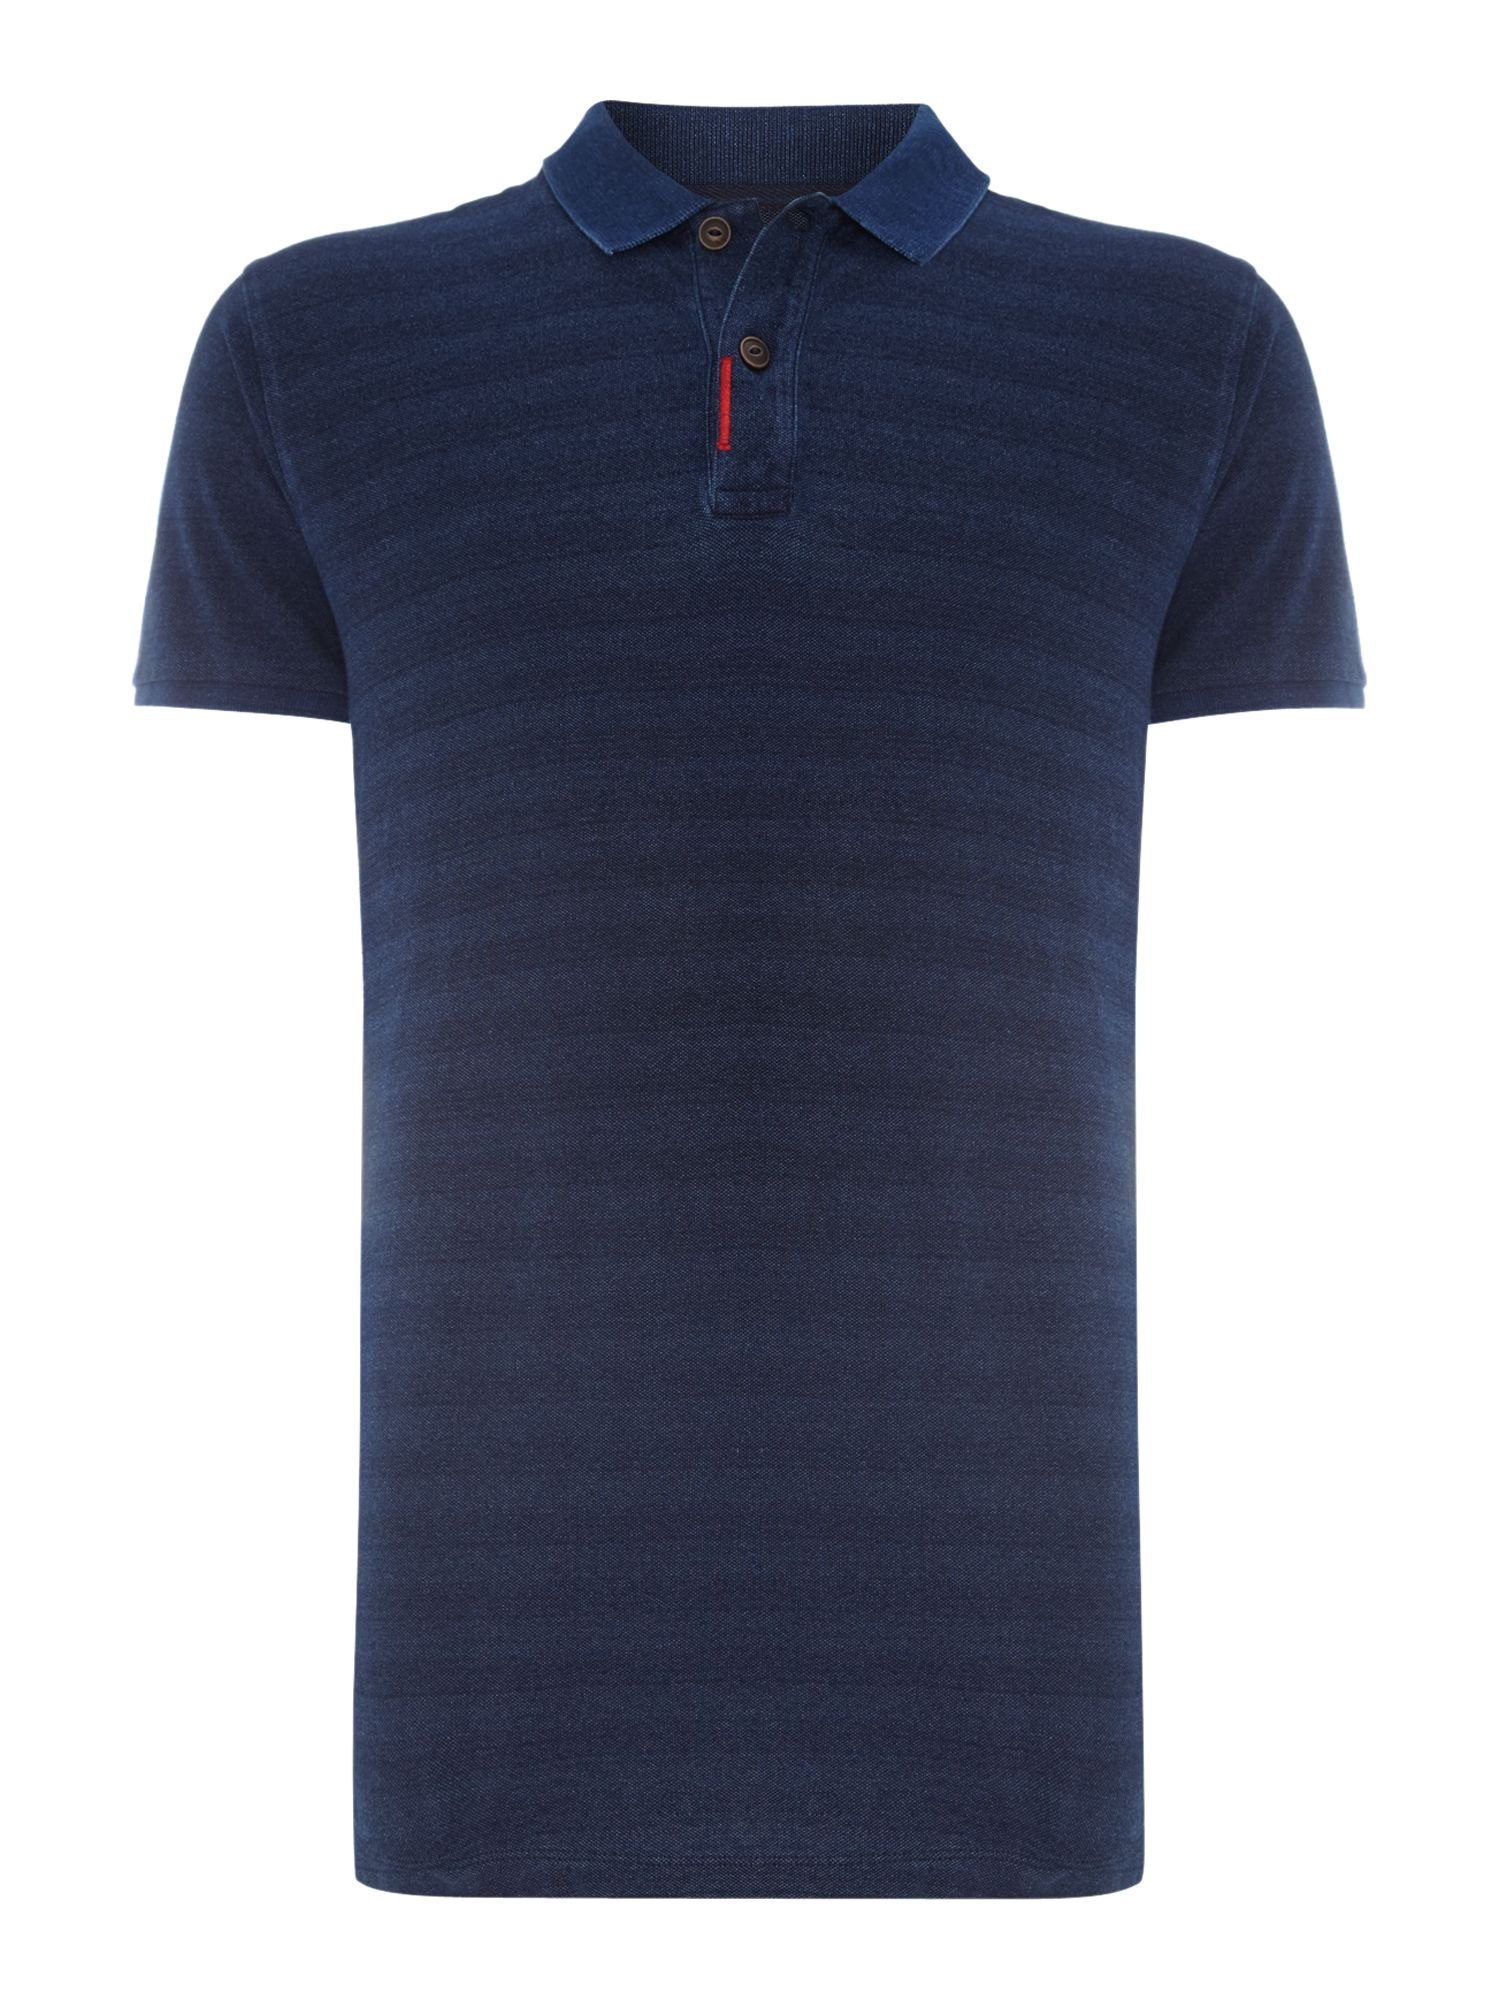 Indigo stripe polo shirt